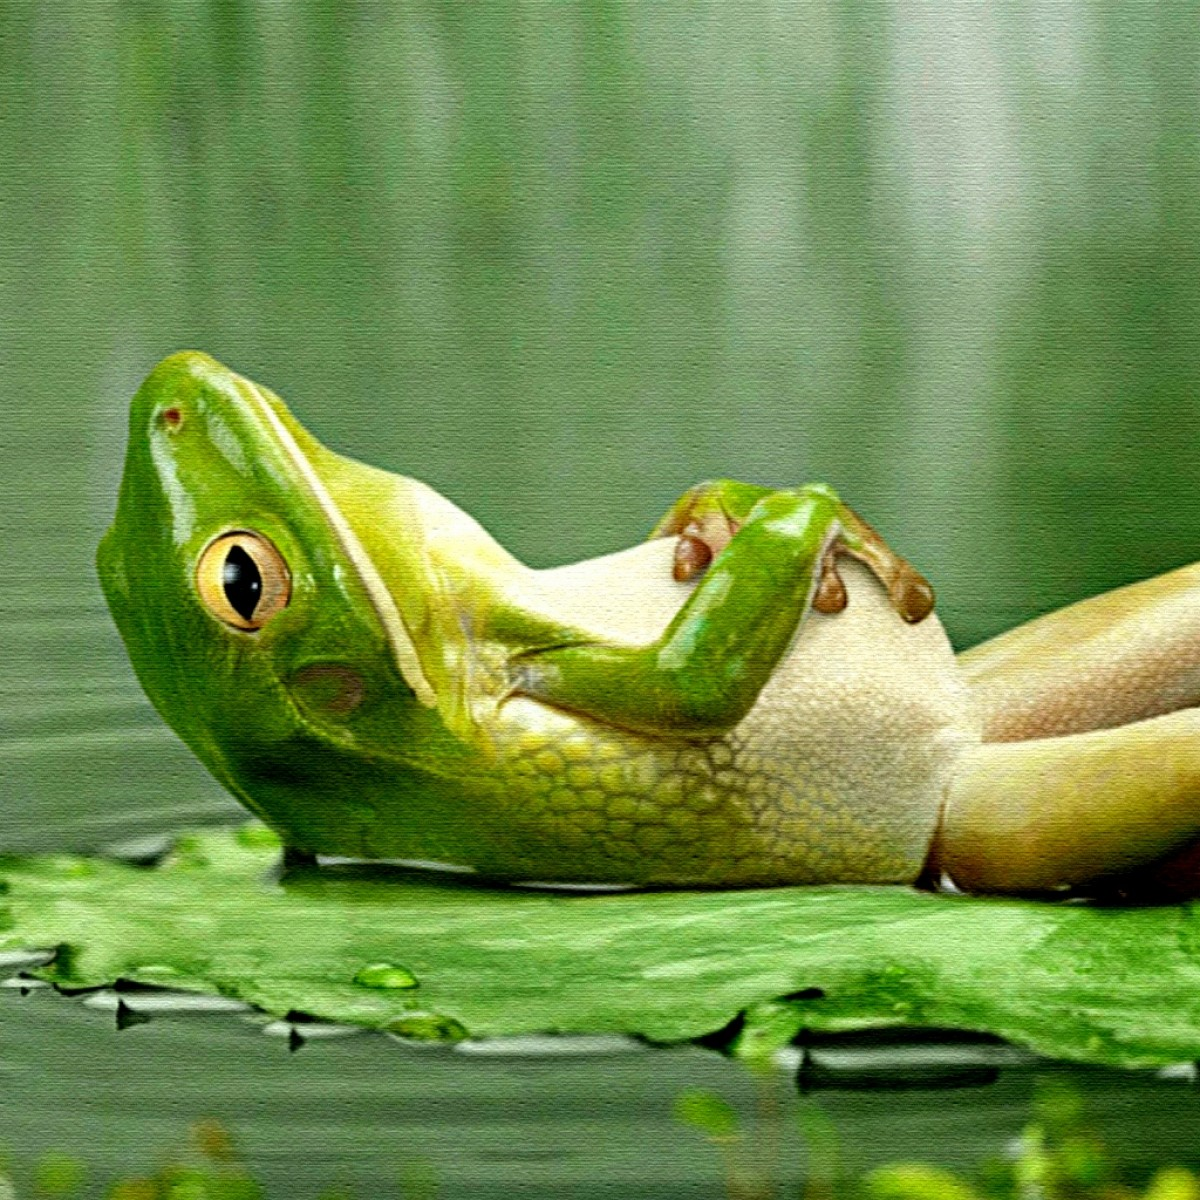 Frog said to describe its home through song